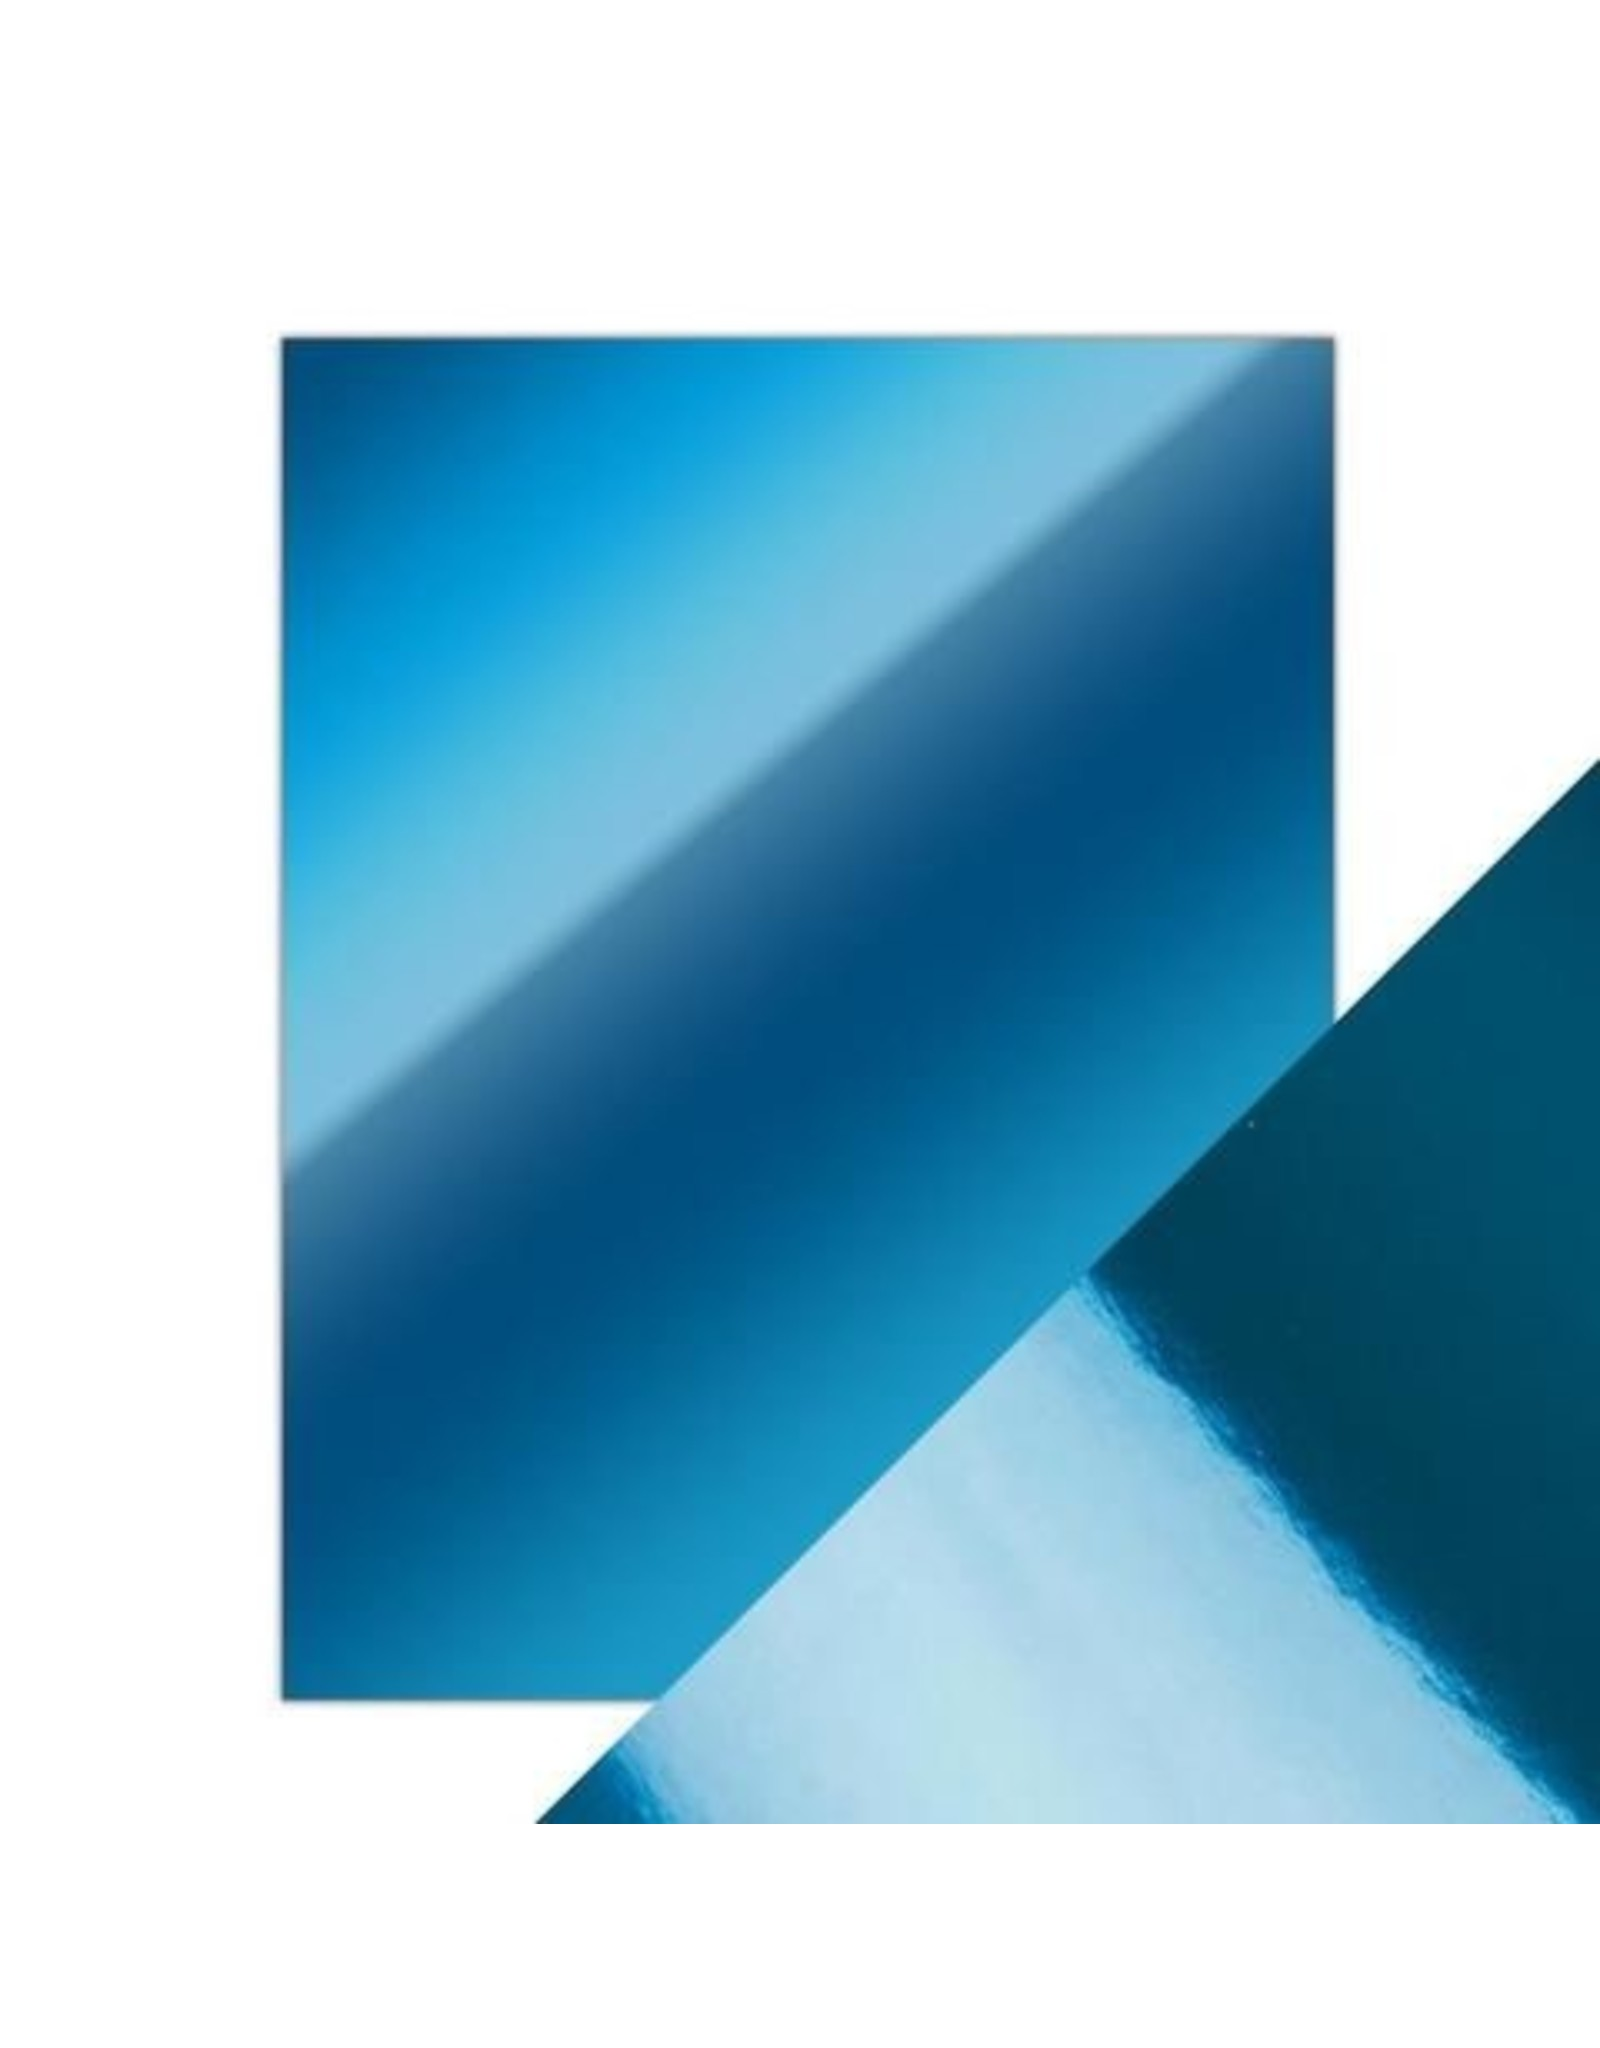 8.5X11 Mirror Cardstock, Gloss - Imperial Blue (5/Pk)